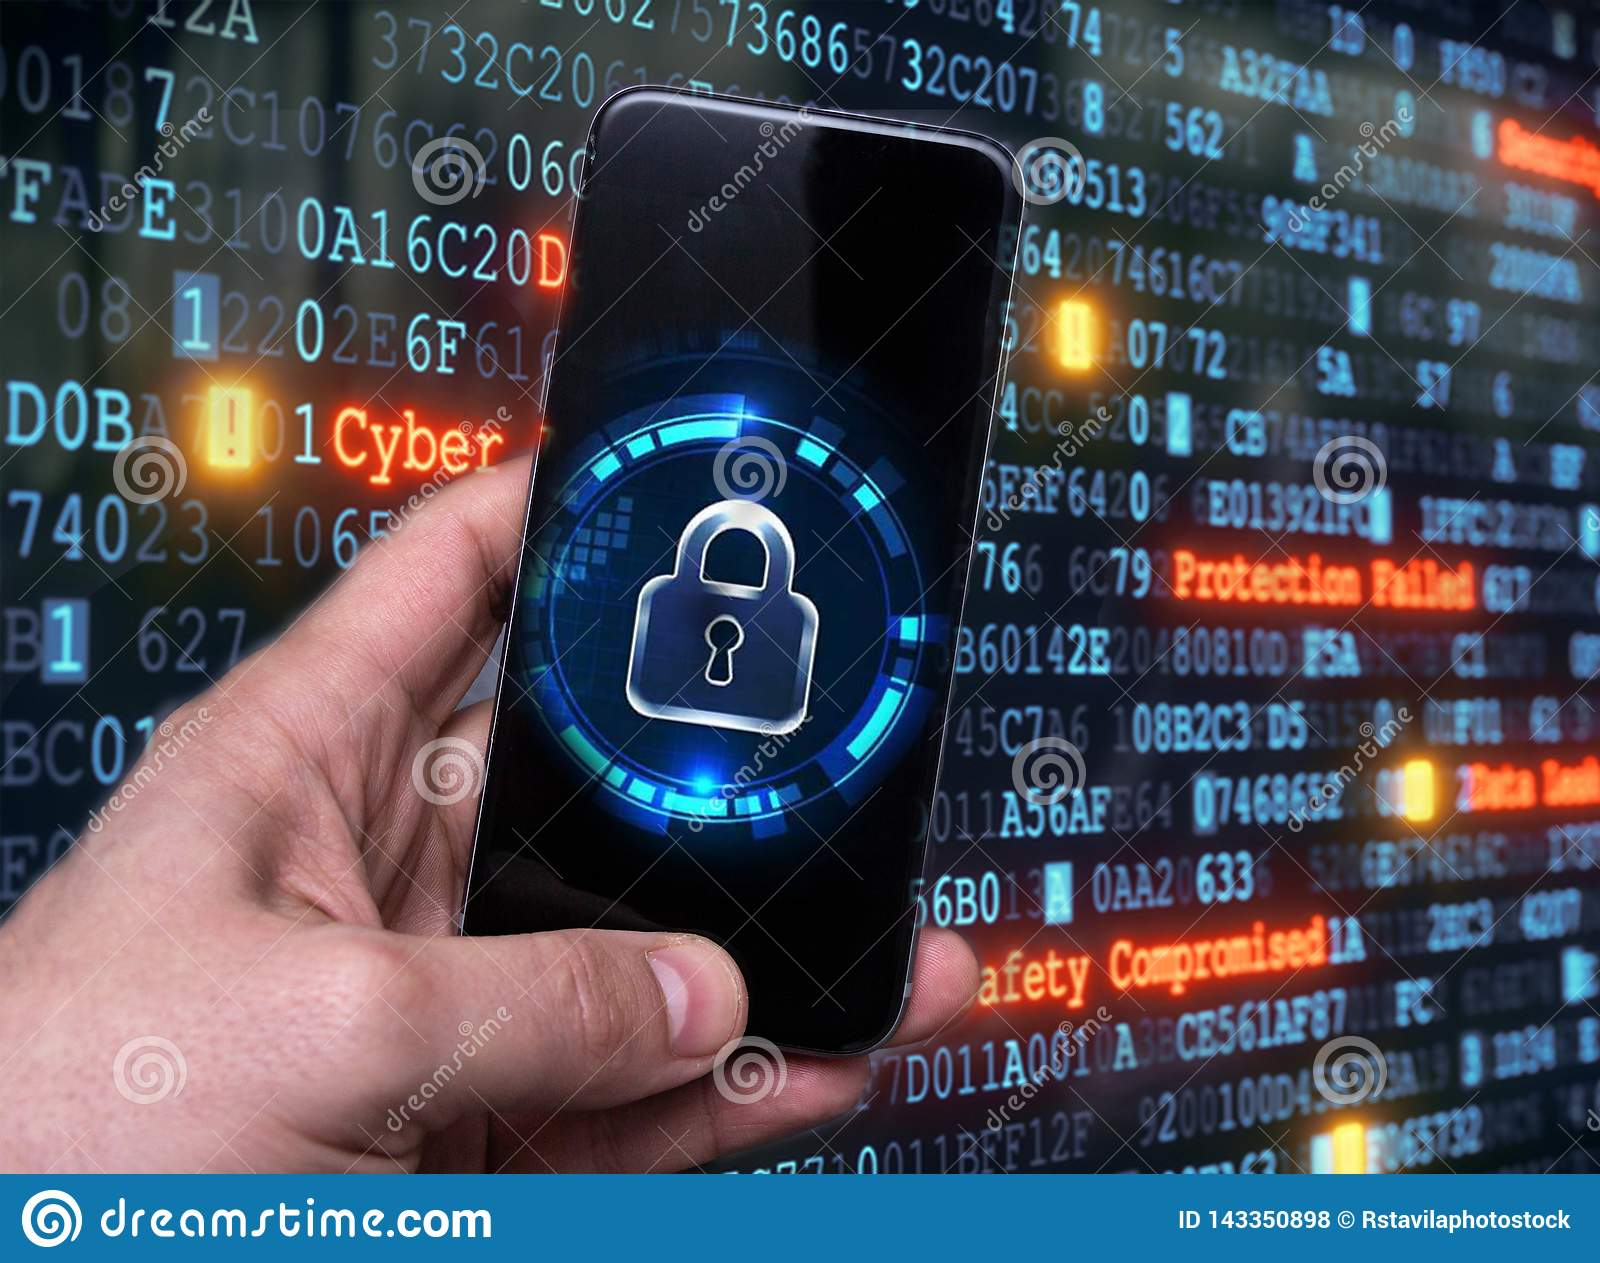 How to hacking phone remotely